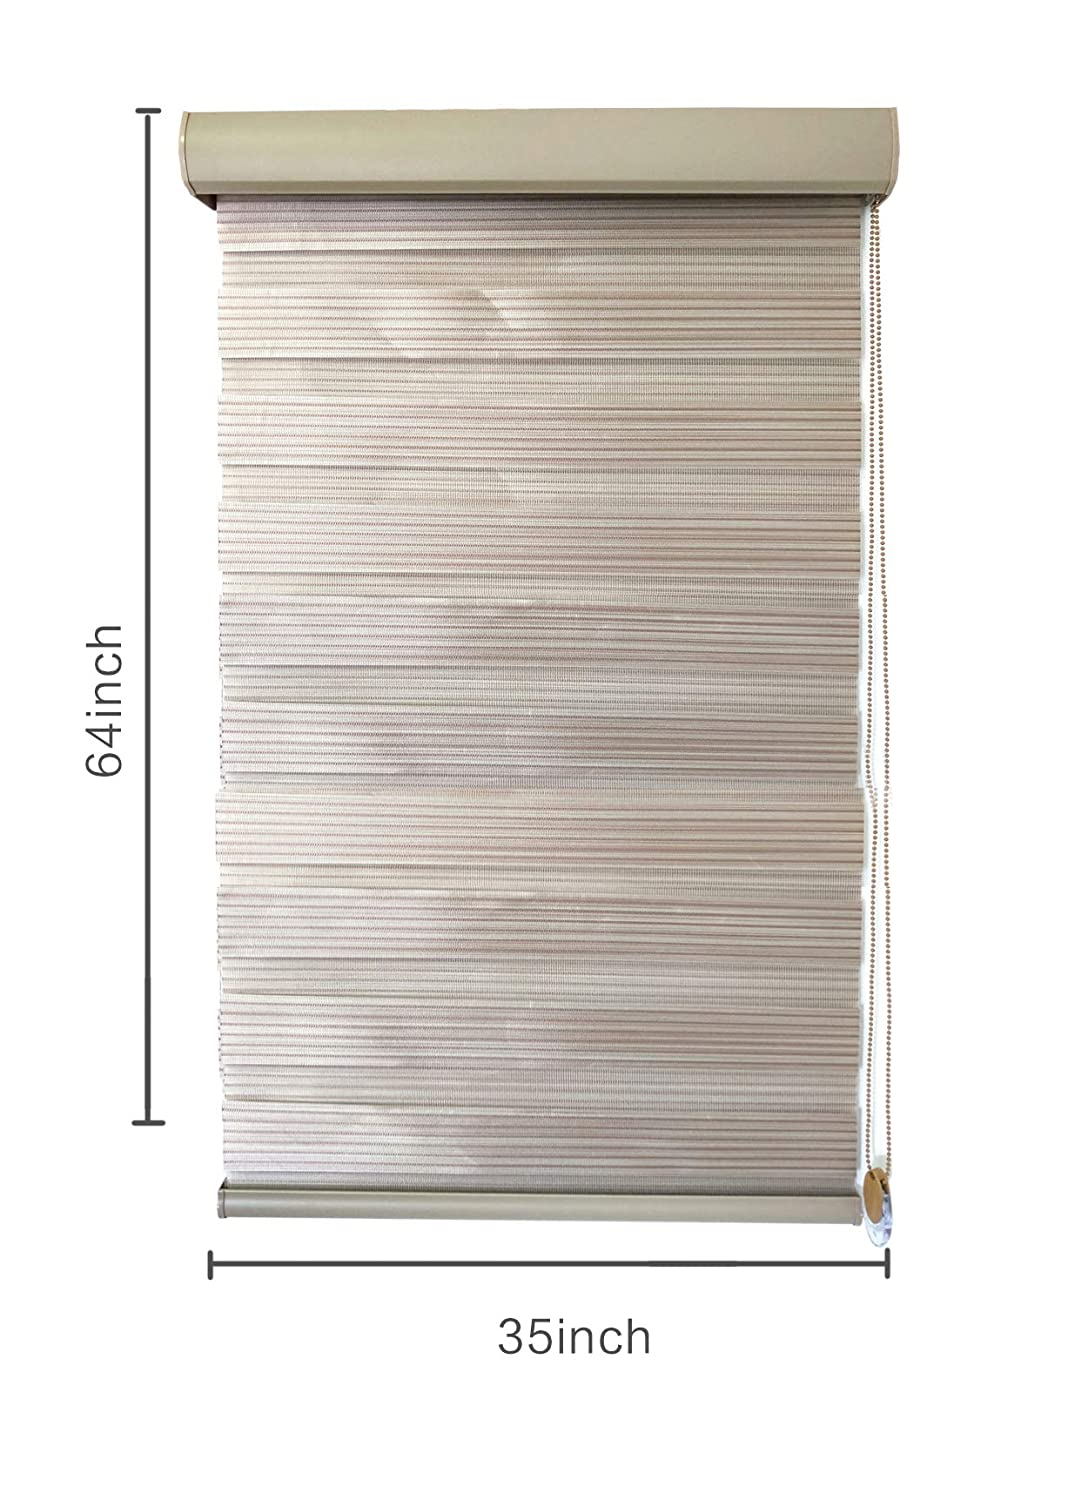 Inch for Windows,Horizontal Window Blinds,Zebra Roller Blinds Wenmier Zebra Roller Shades Blinds W35 X H64 Horizontal Window Blinds and Shades/& Dual Layer Blinds